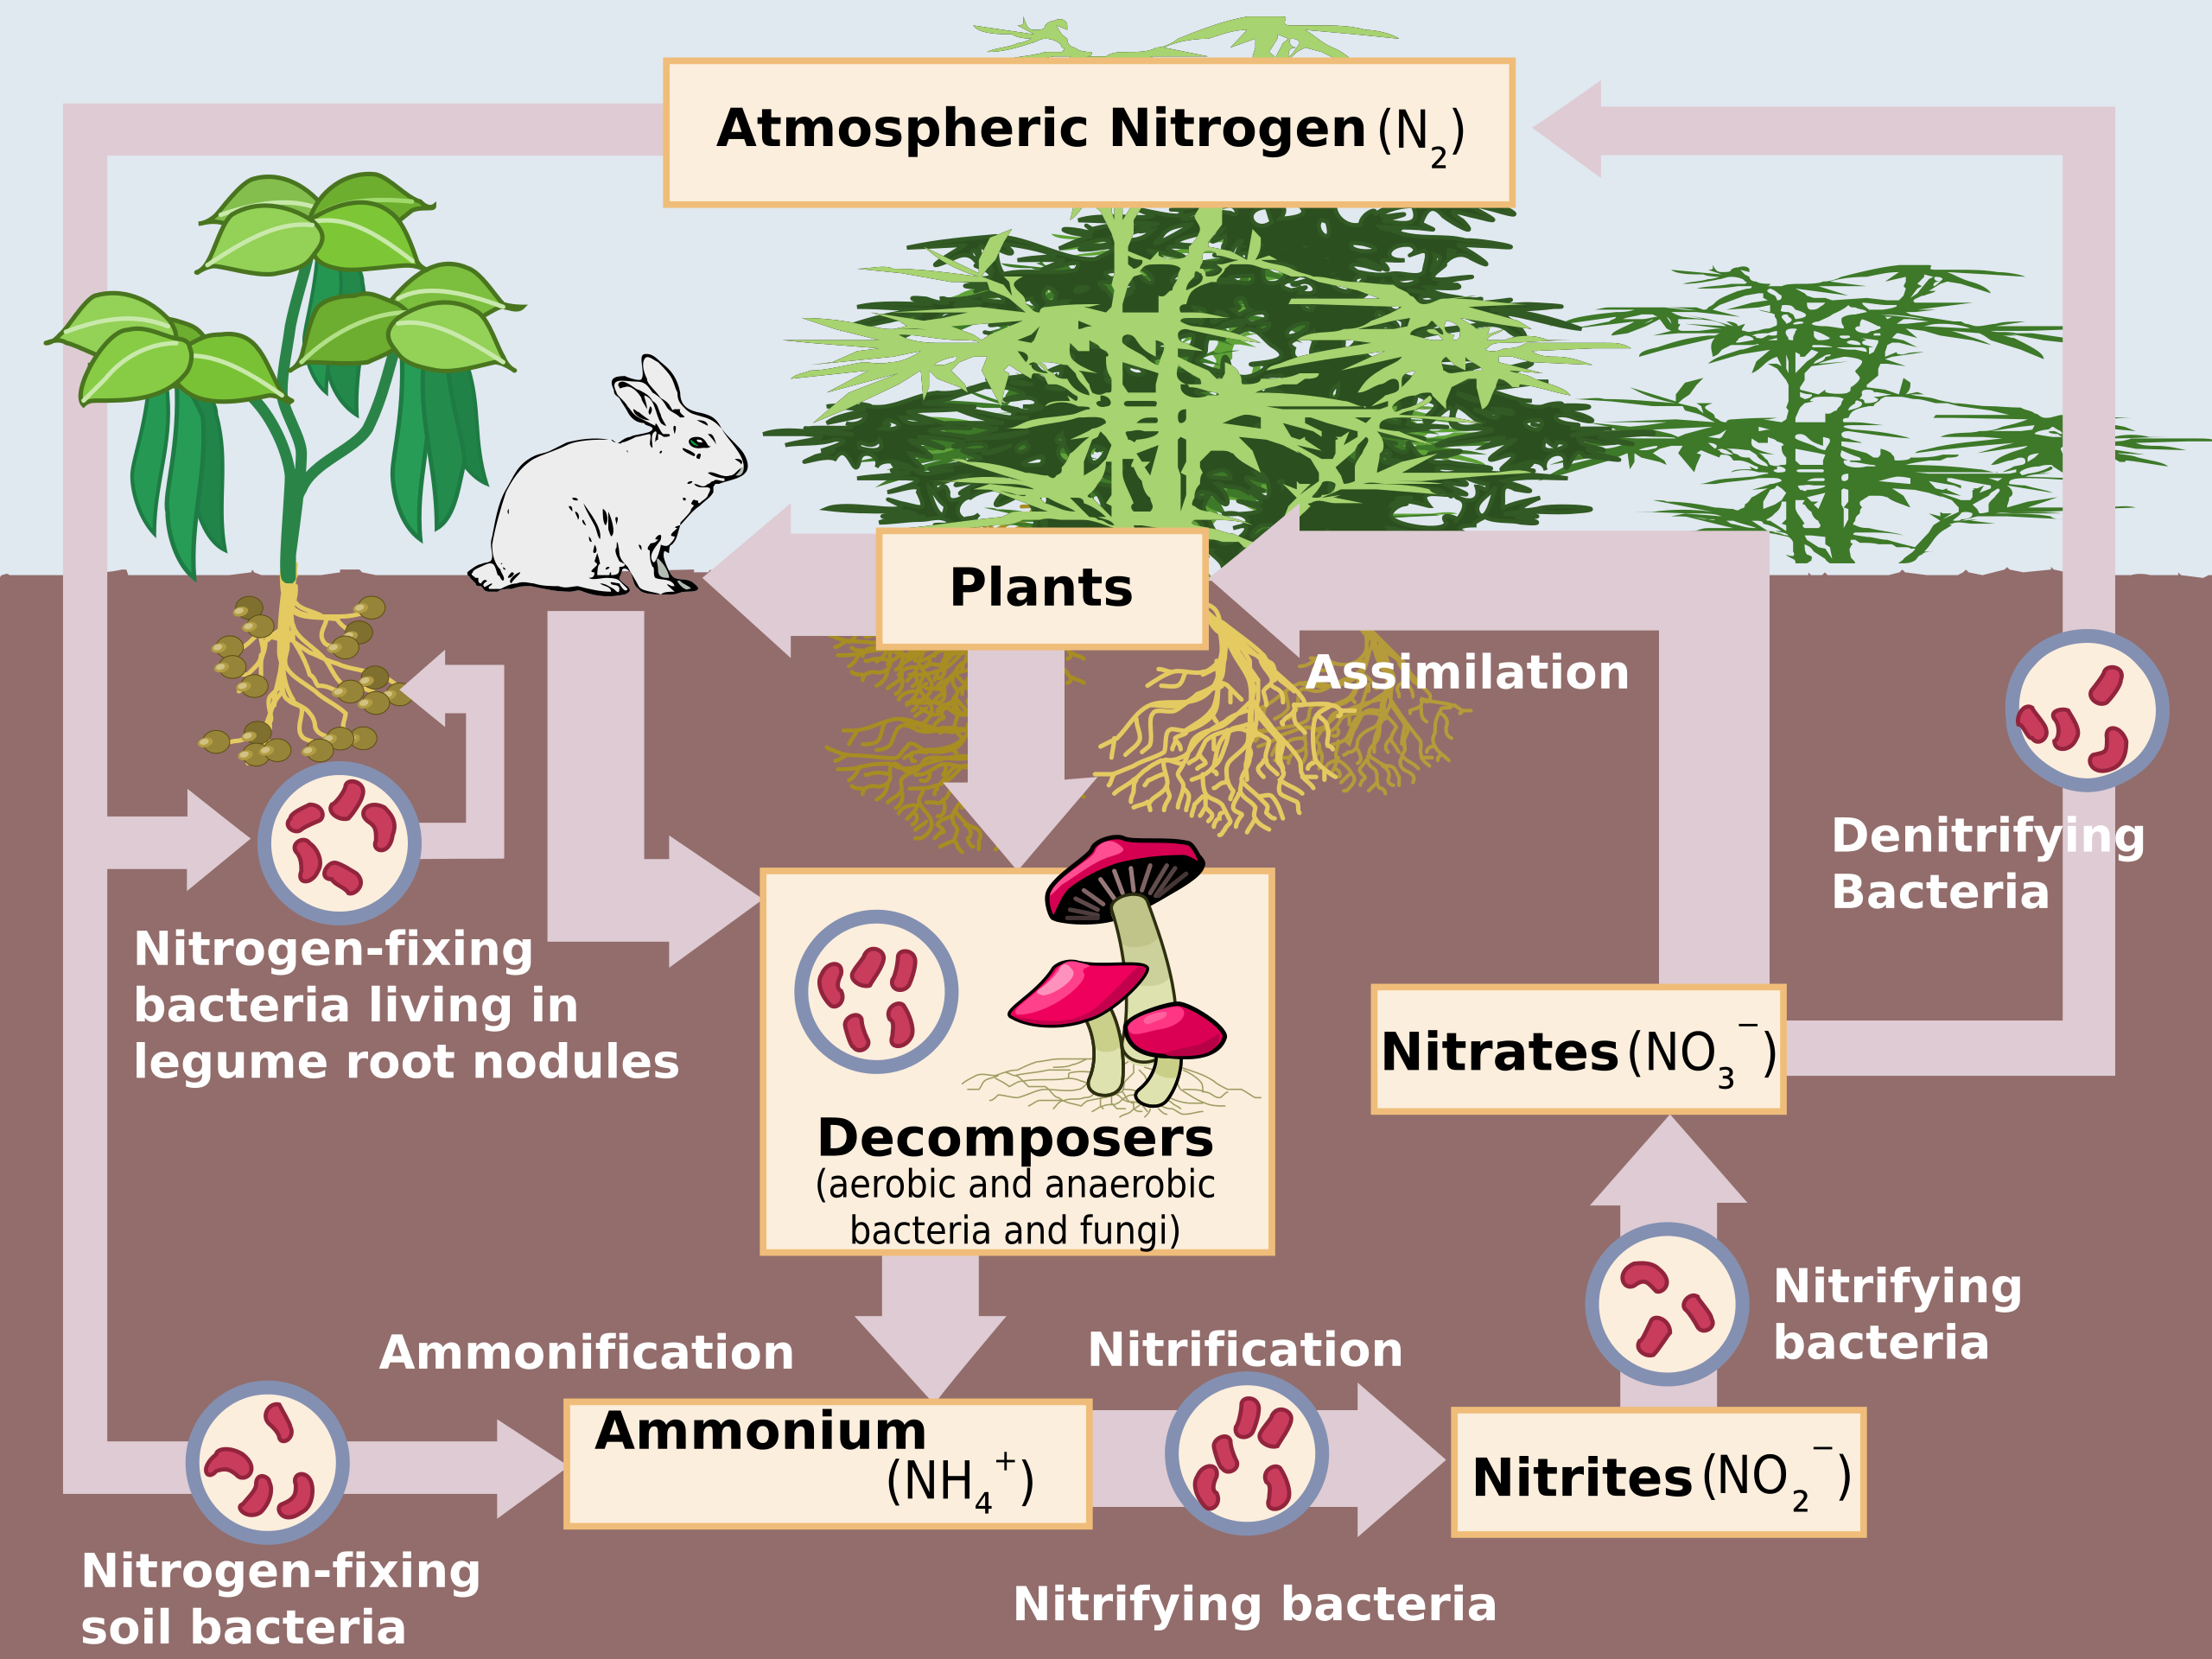 Schematic Representation Of The Nitrogen Cycle Abiotic Nitrogen Fixation Has Been Omitted